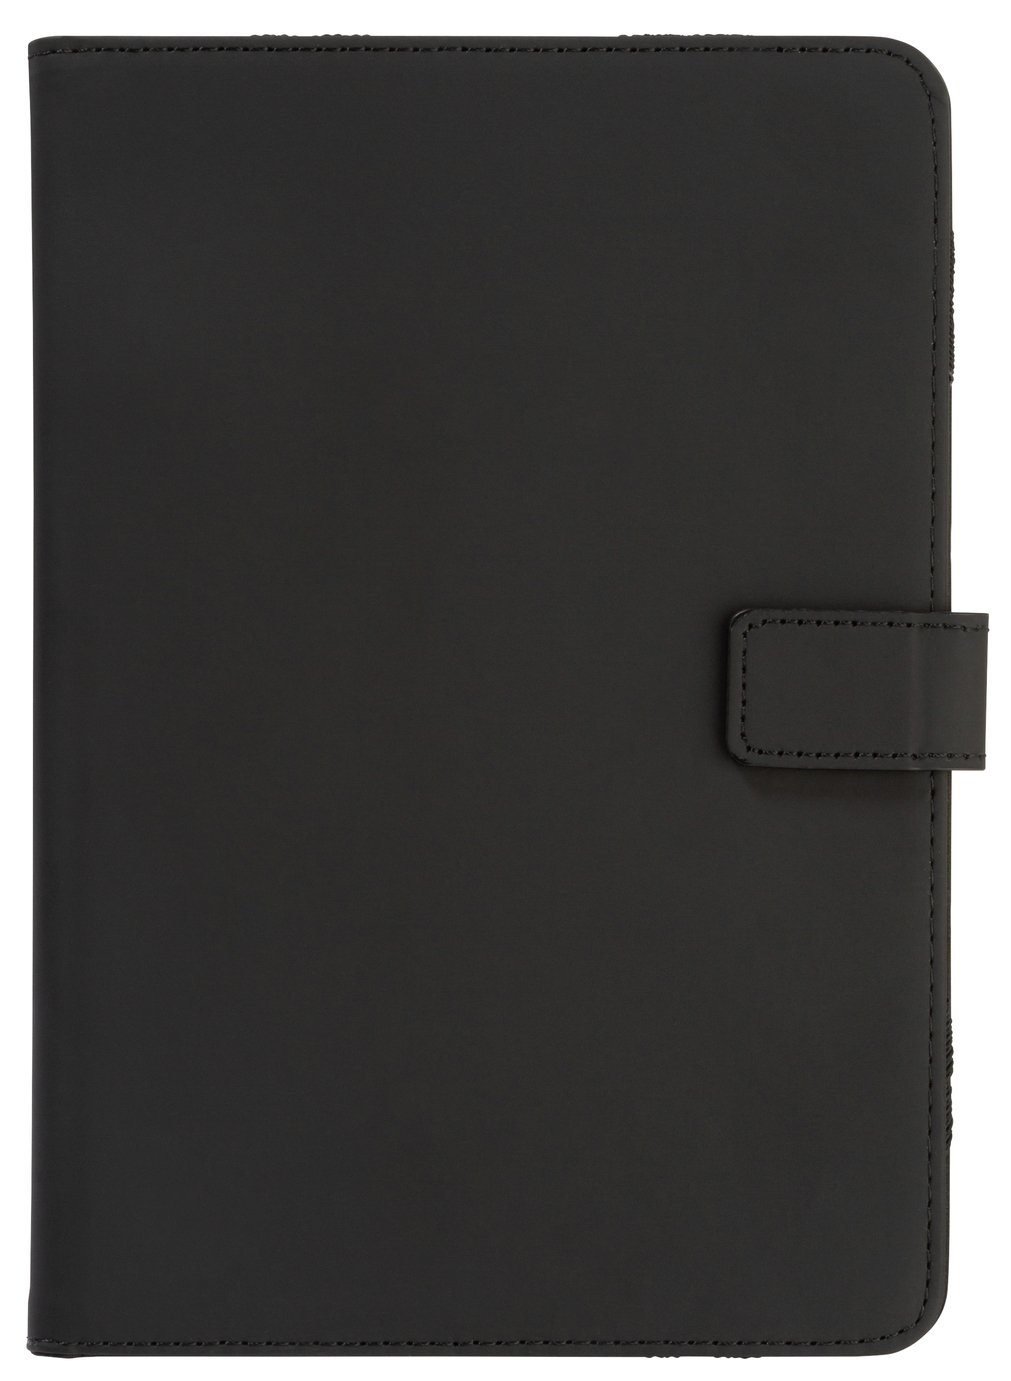 Universal - 7/8 Inch PVC Tablet Case - Black from Universal